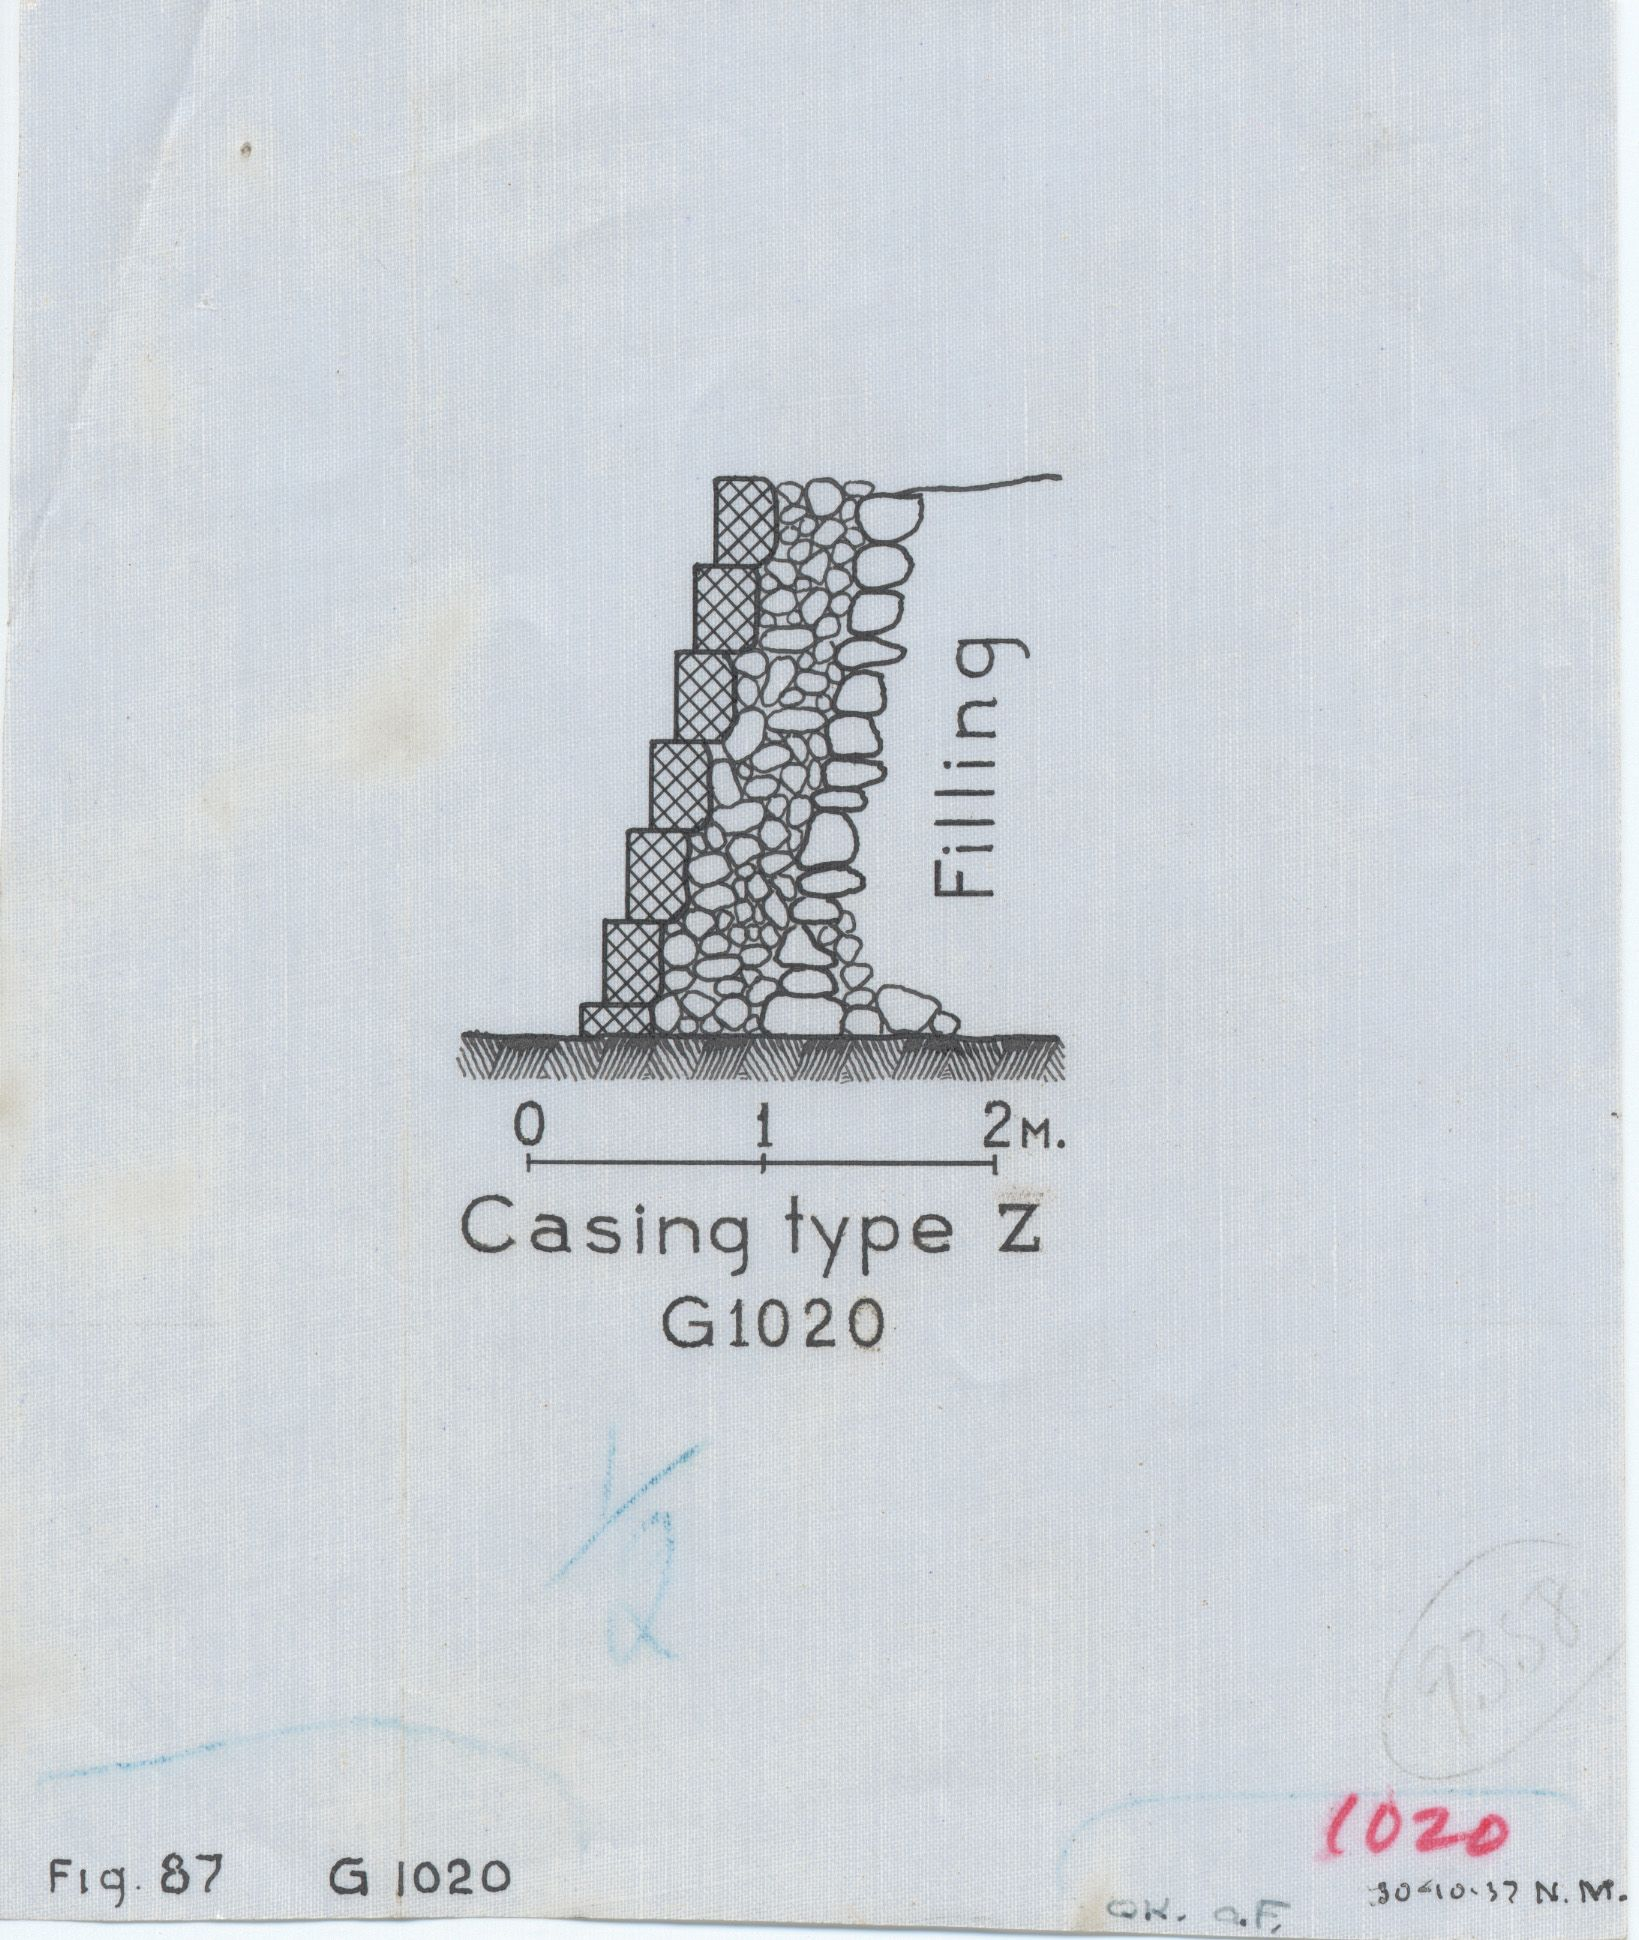 Maps and plans: G 1020, Section of casing type Z